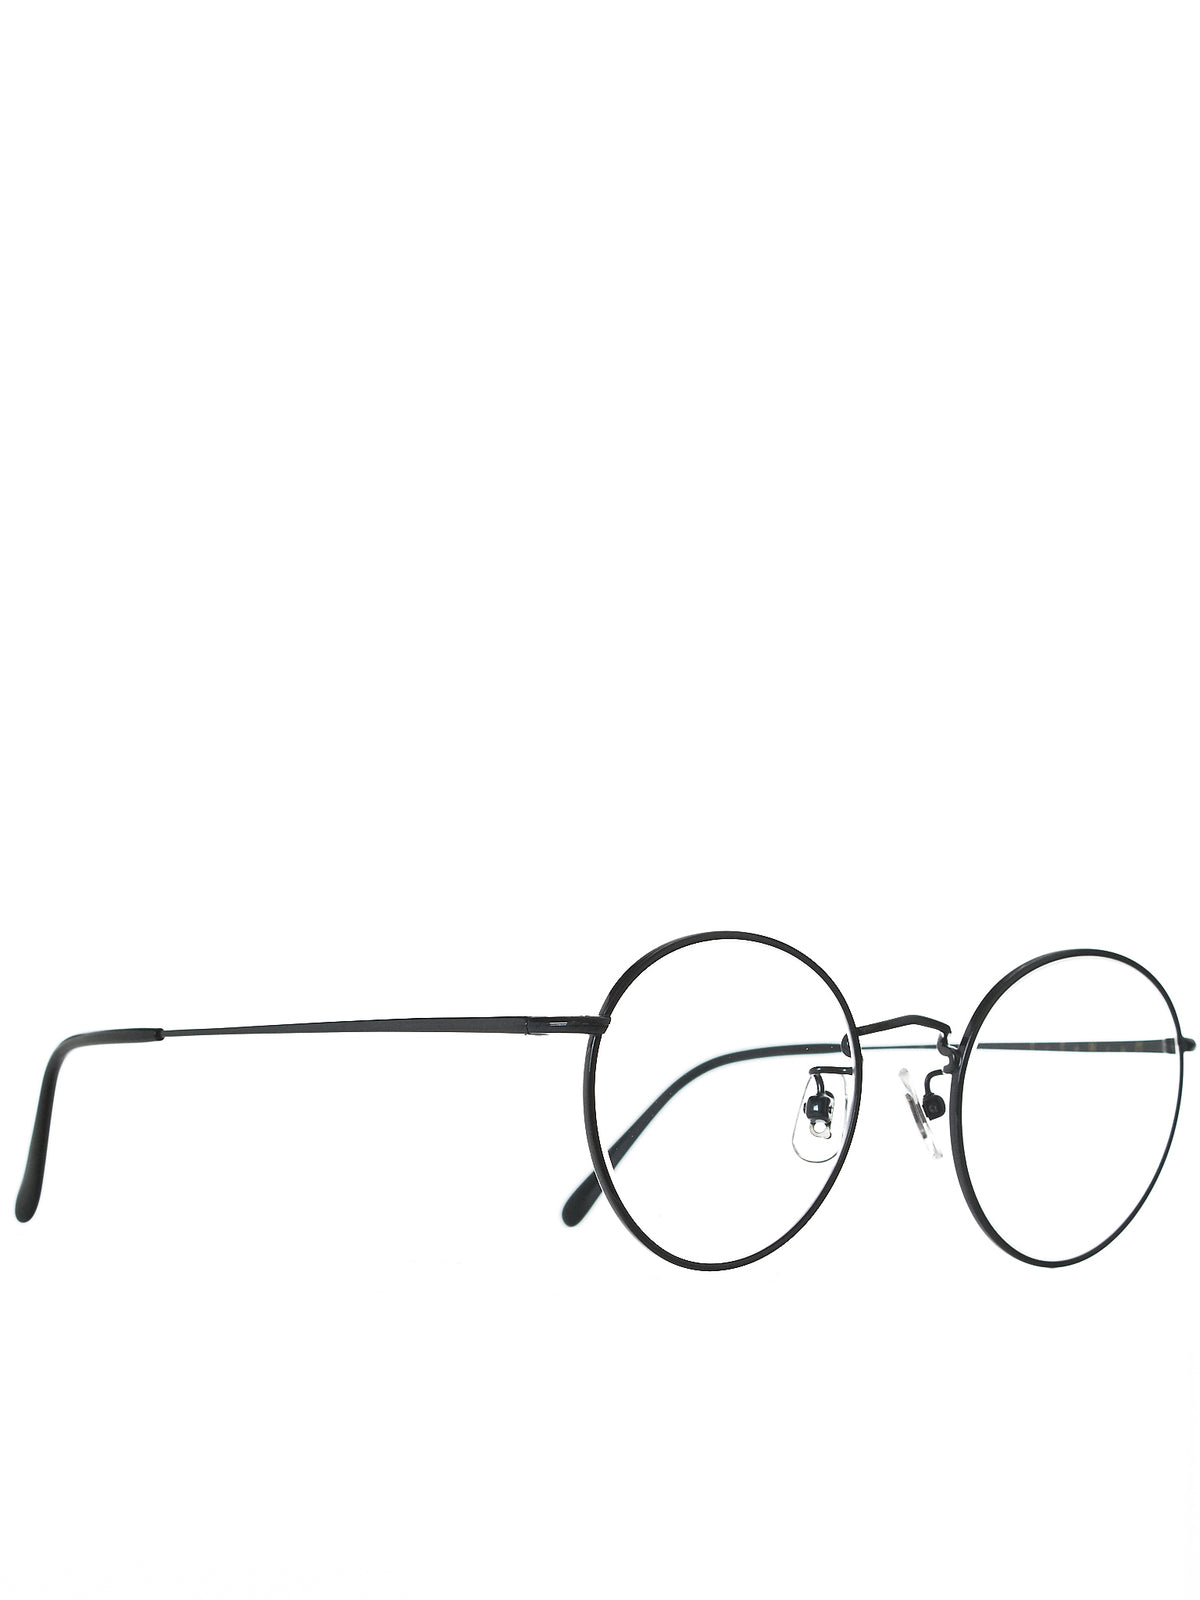 'BOSTON' Round-Frame Glasses (ST-TITAN-BOSTON-MD-GRAY-CLEAR)